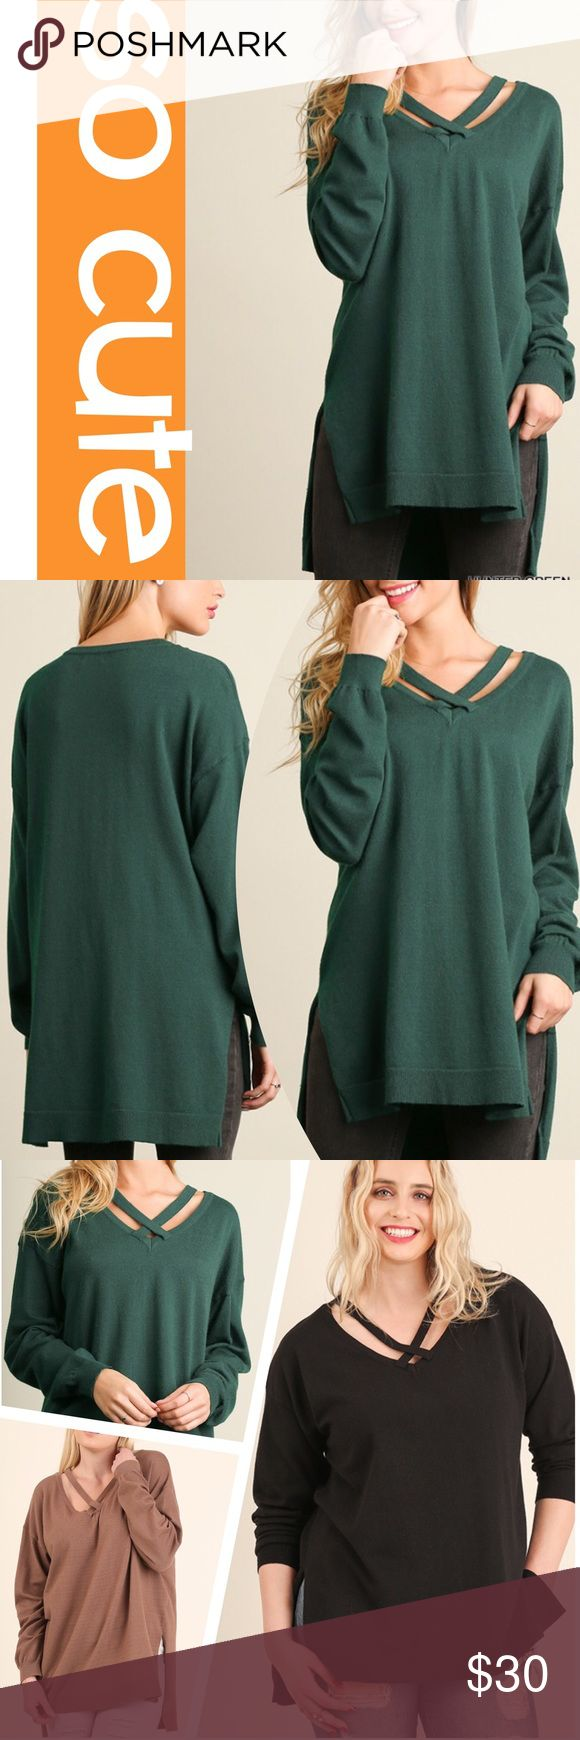 CROSS TOP LIGHTWEIGHT SWEATER Trendy, cross top with a cute high low hem. Very flattering. Rayon/polyester/spandex. Measurements upon request. MOCHA & BLACK ALSO AVAILABLE IN A SEPARATE LISTING. tla2 Sweaters Crew & Scoop Necks